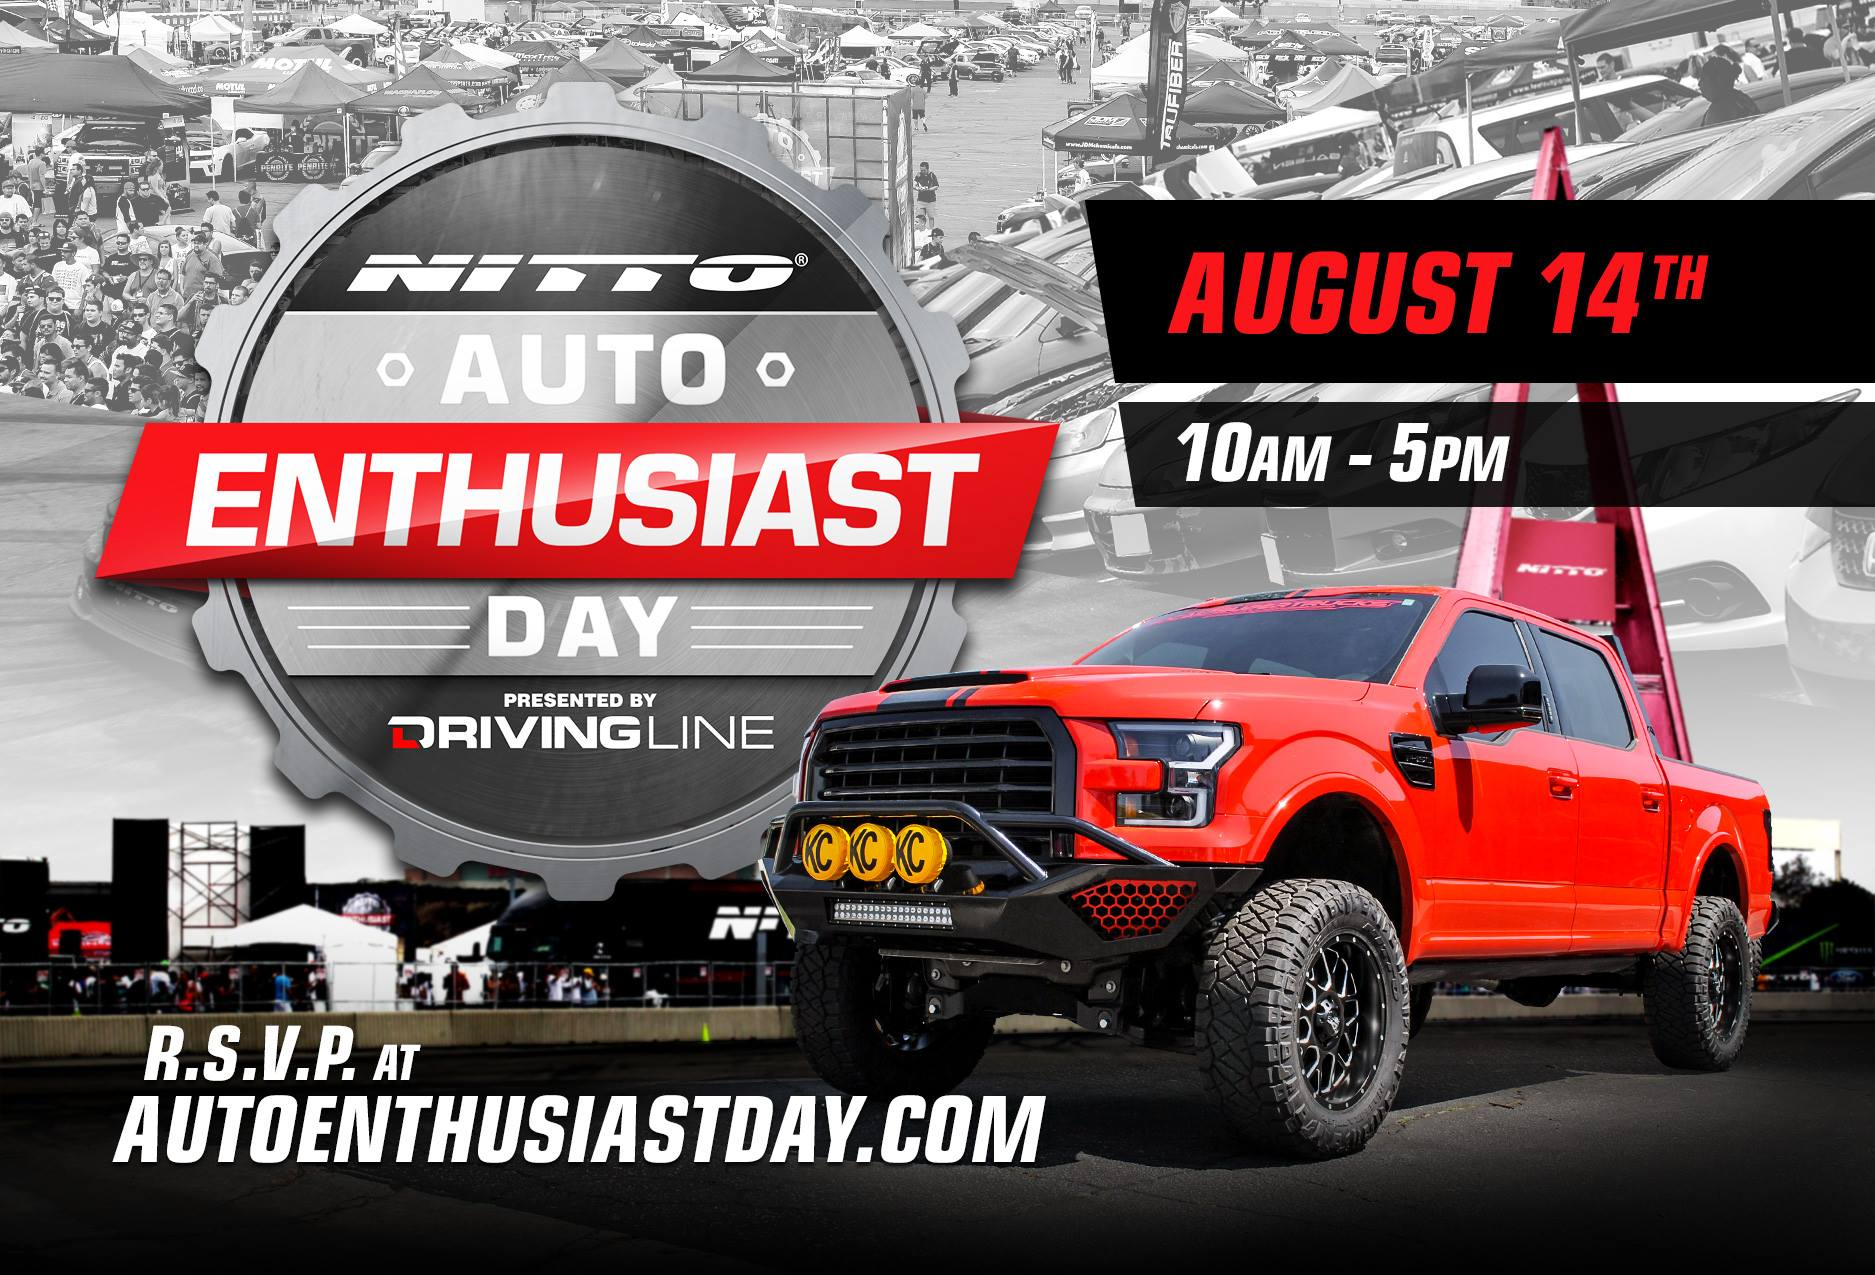 Nitto Auto Enthusiast Day 2016